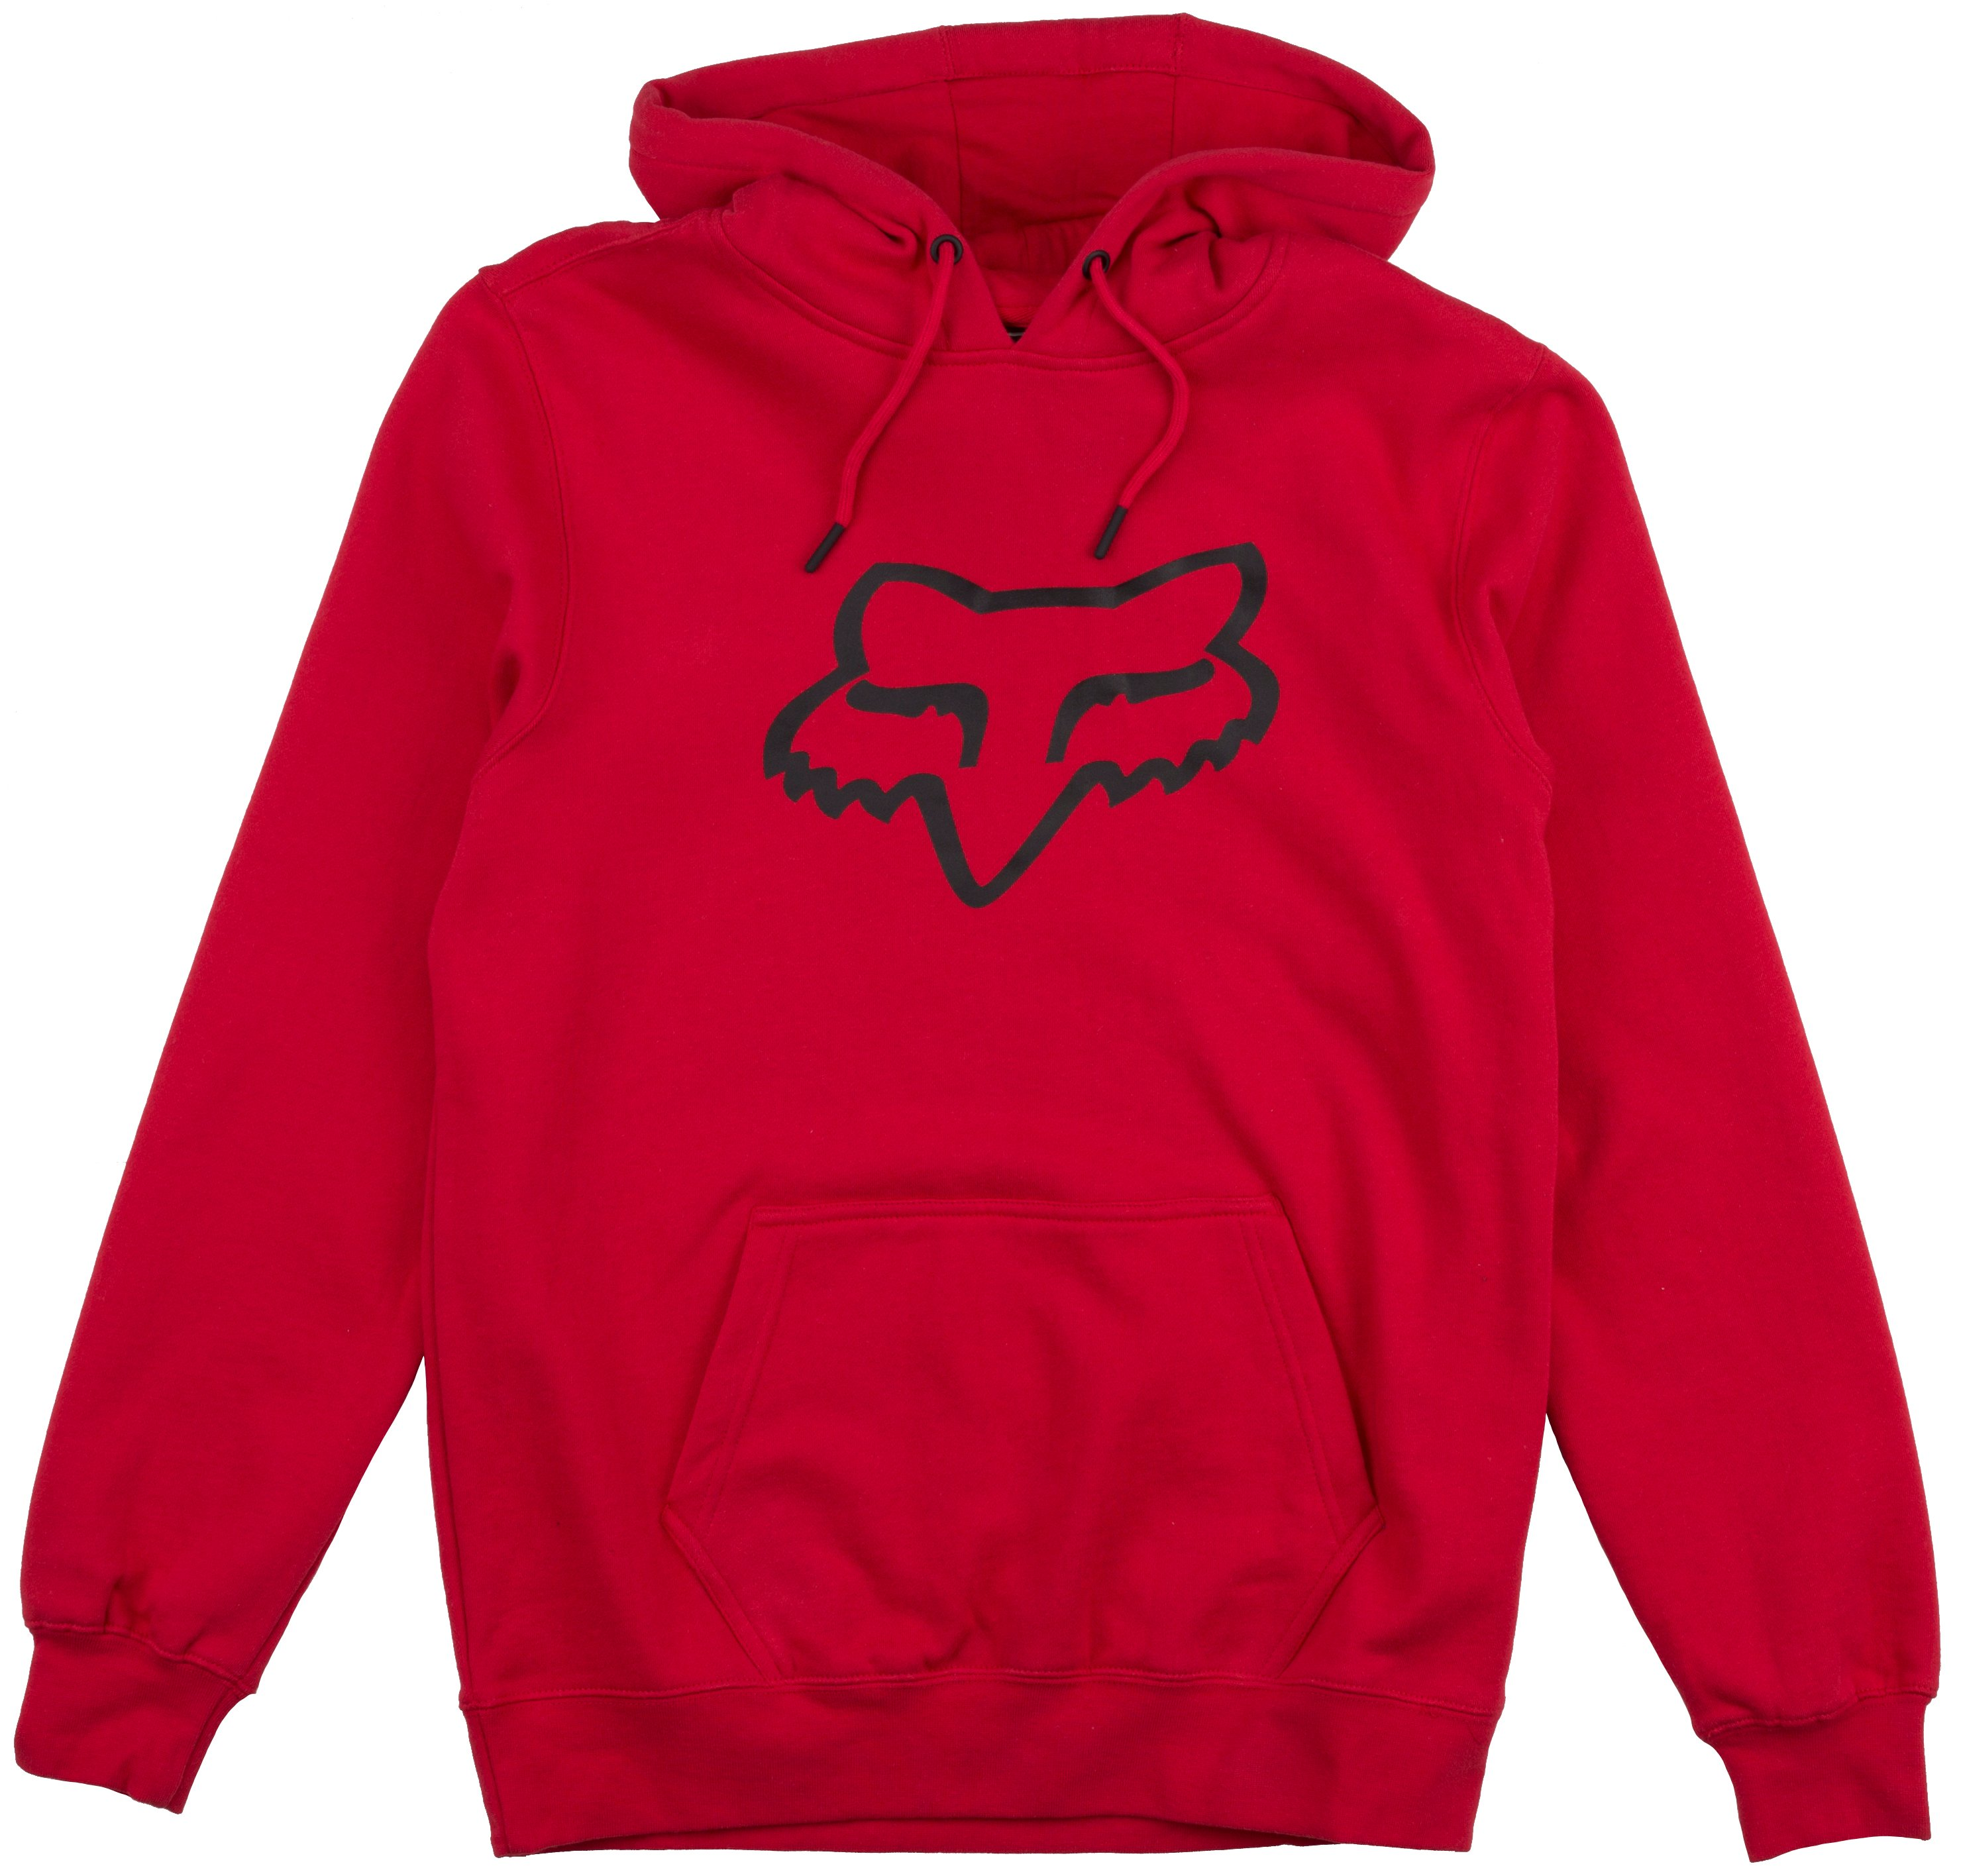 Medium I Know Theres Money in Motocross Hoodies Red